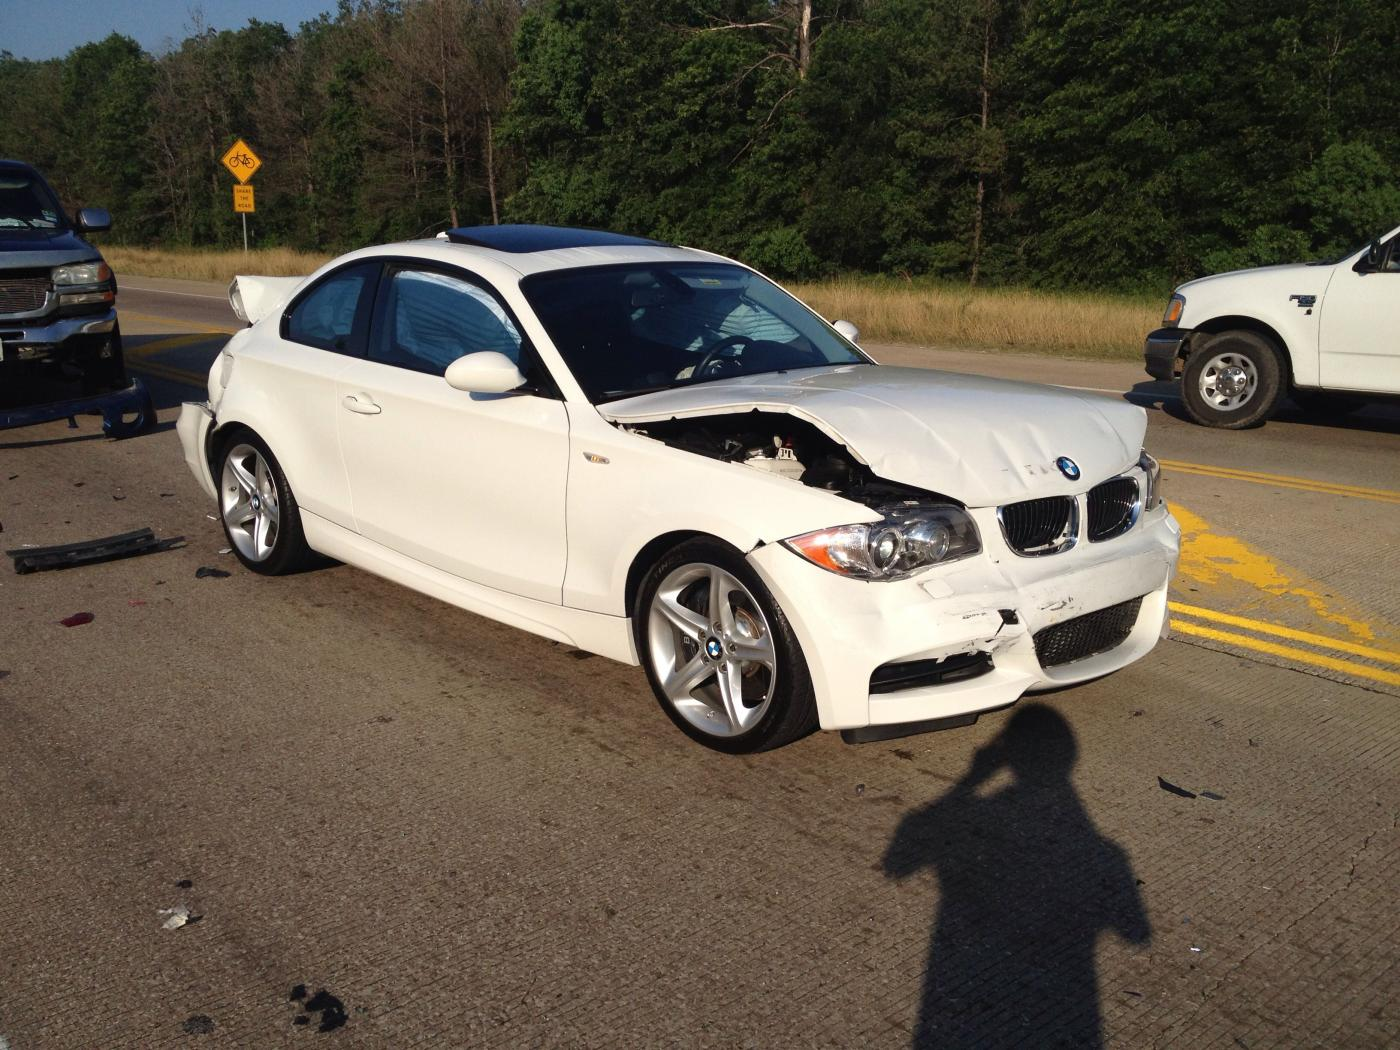 new 135i in accident